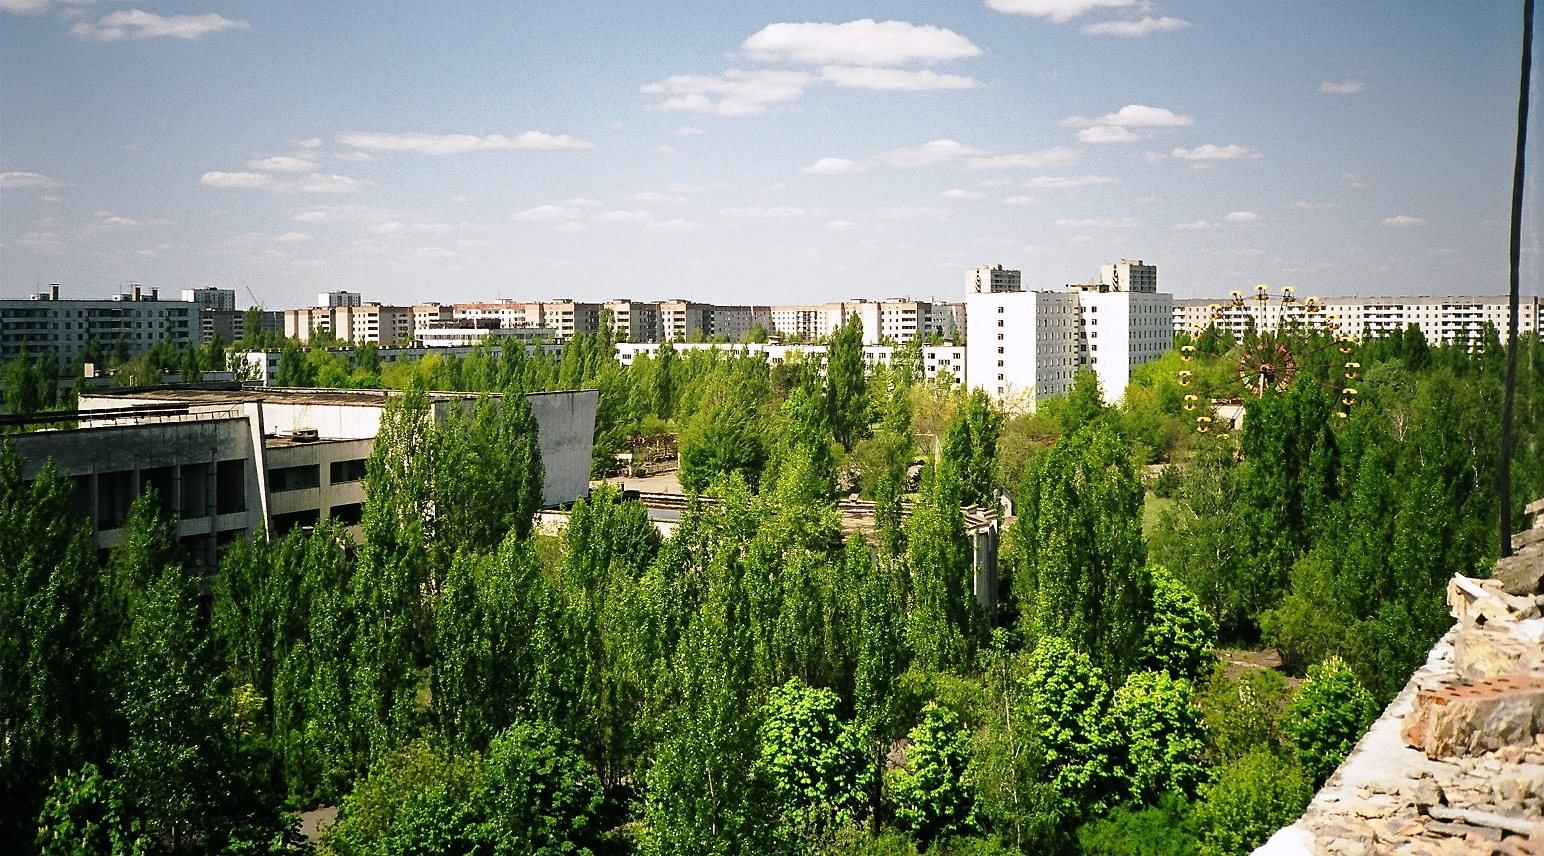 view from an apartment balcony pripyat author ran rance ian